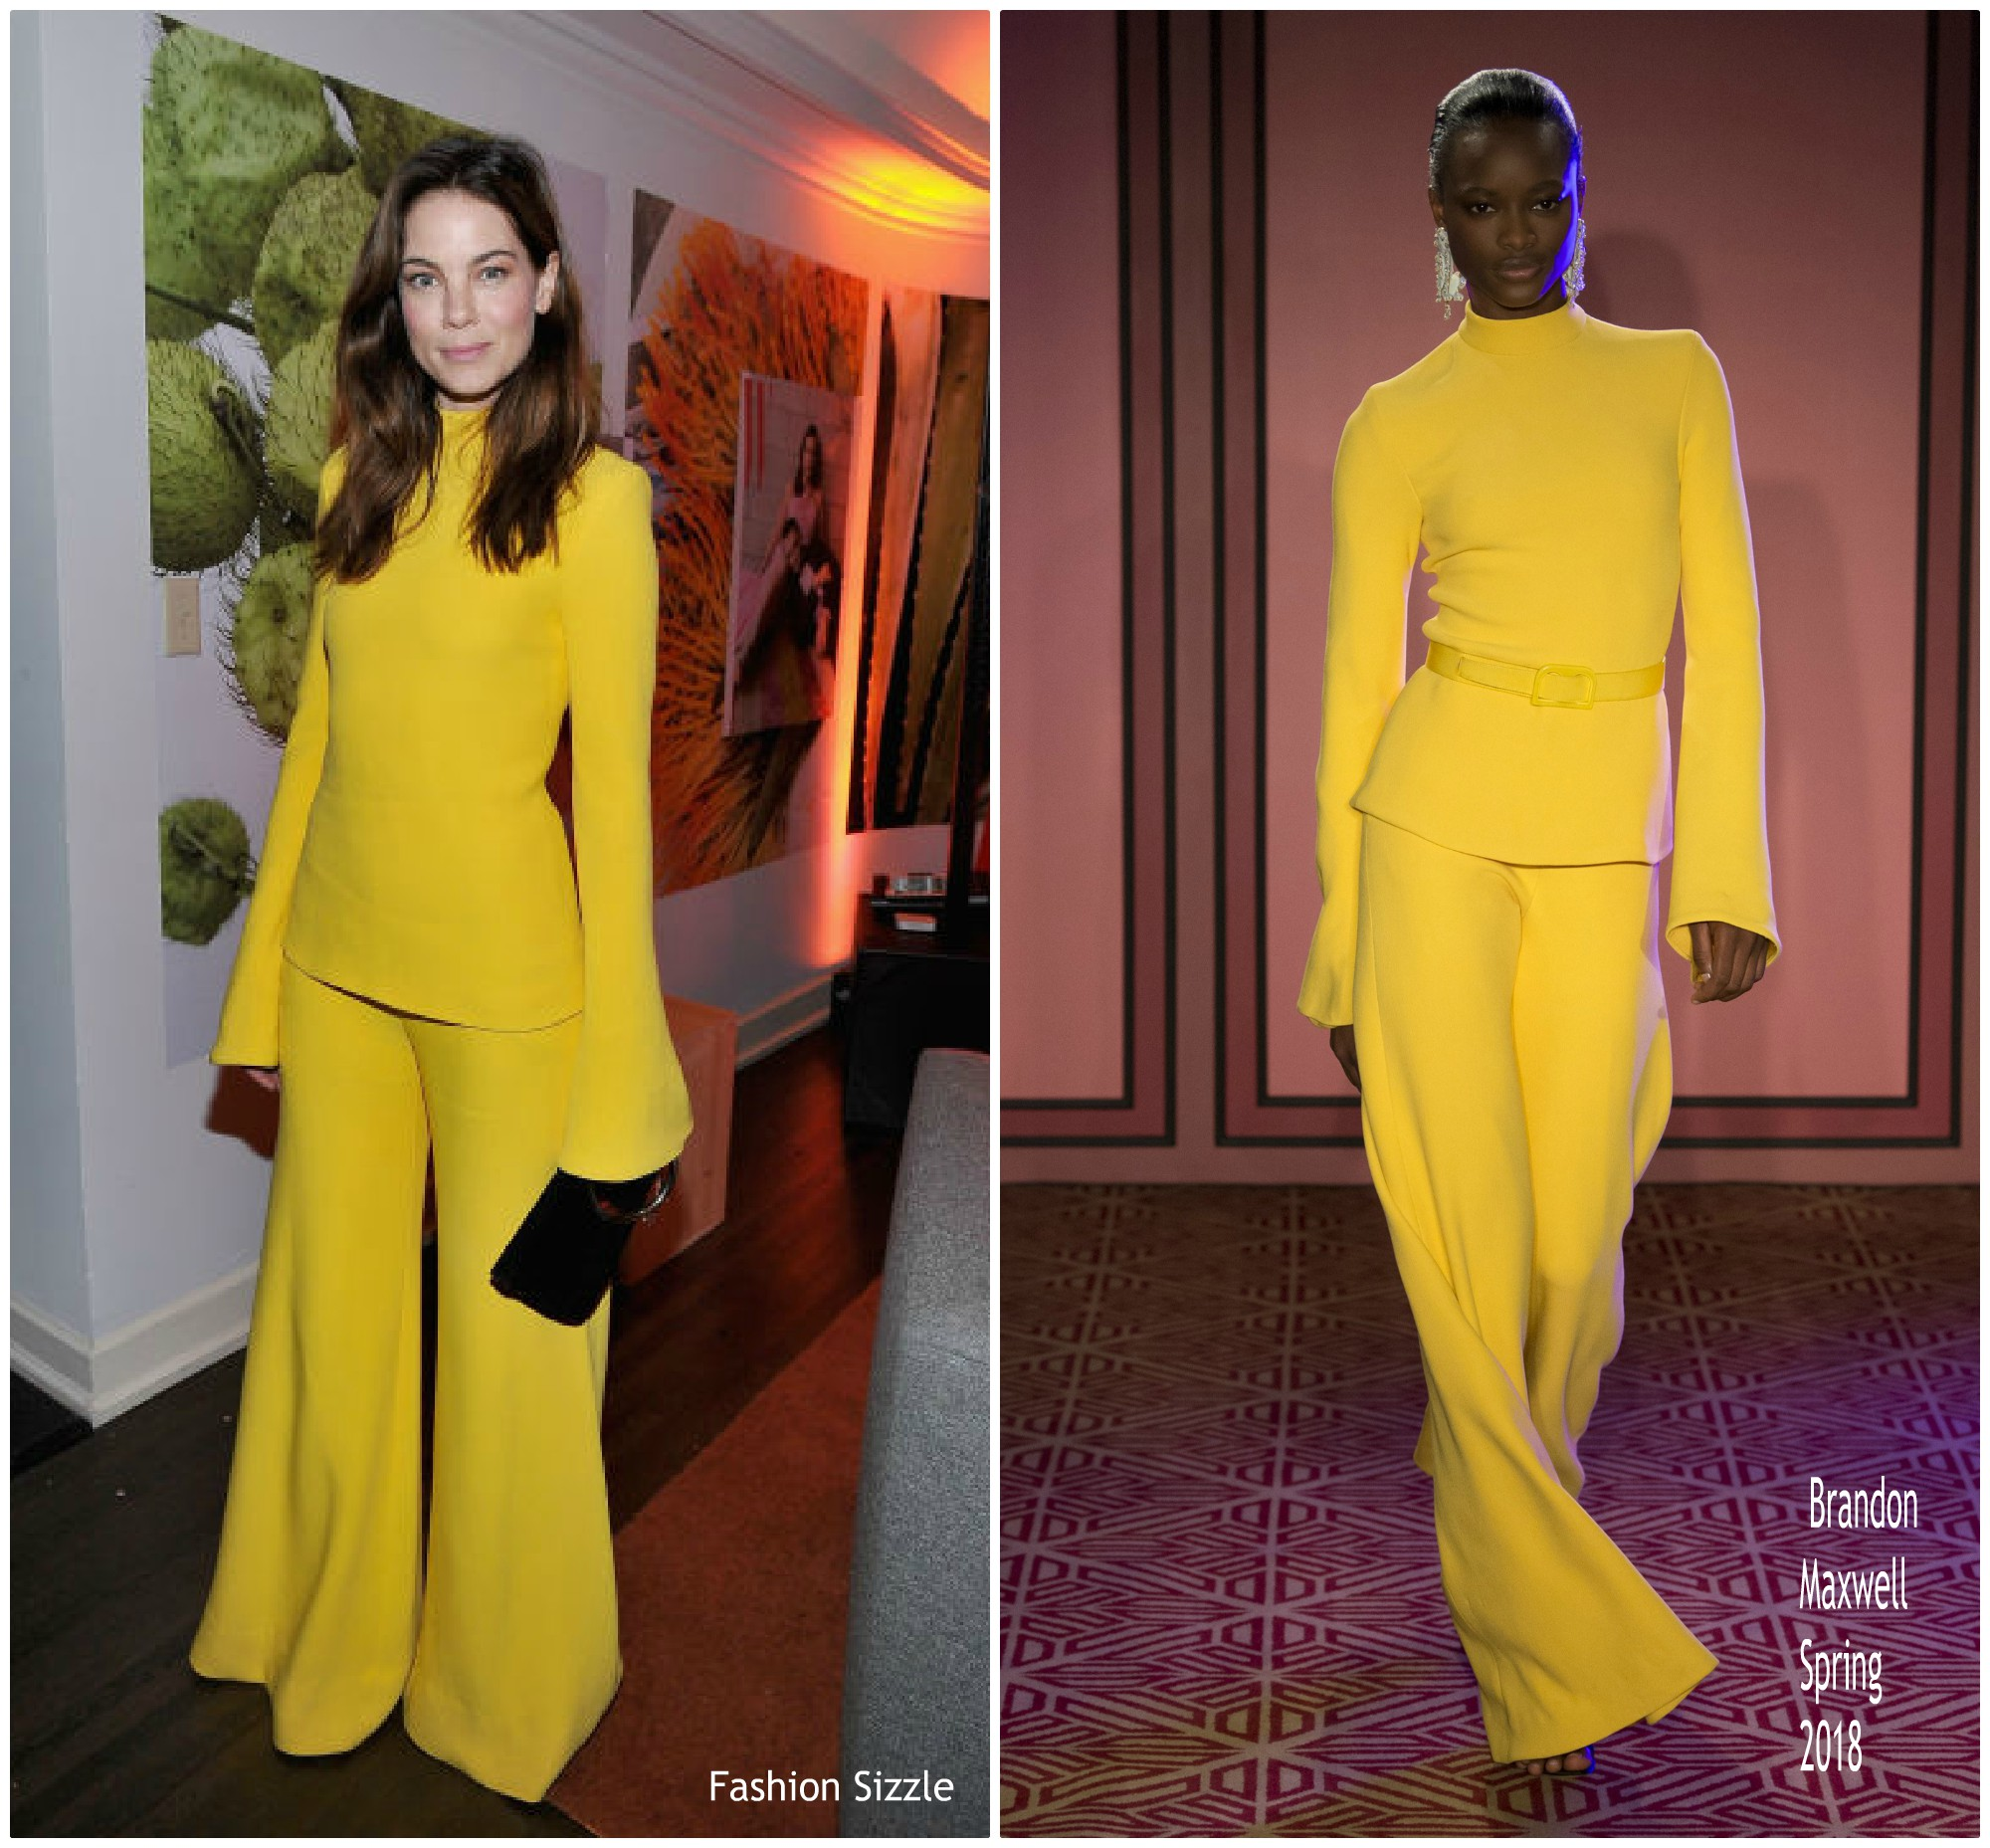 michelle-monaghan-in-brandon-maxwell-2-magazine-celebrates-its-best-performances-portfolio